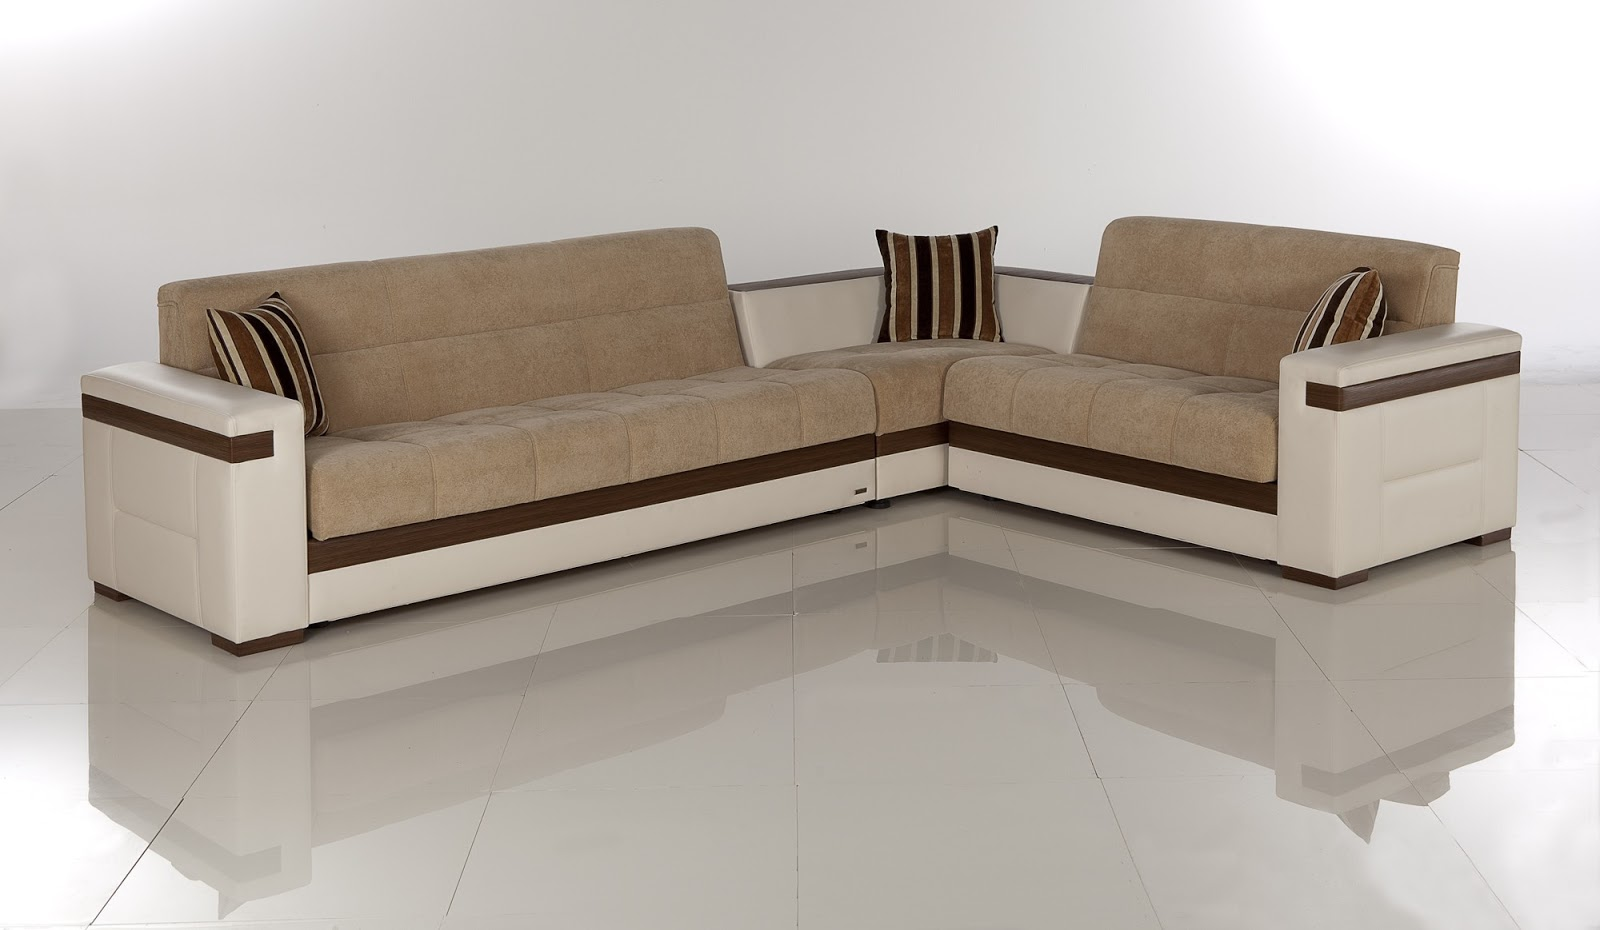 Sofa designs ideas home and design for House furniture design